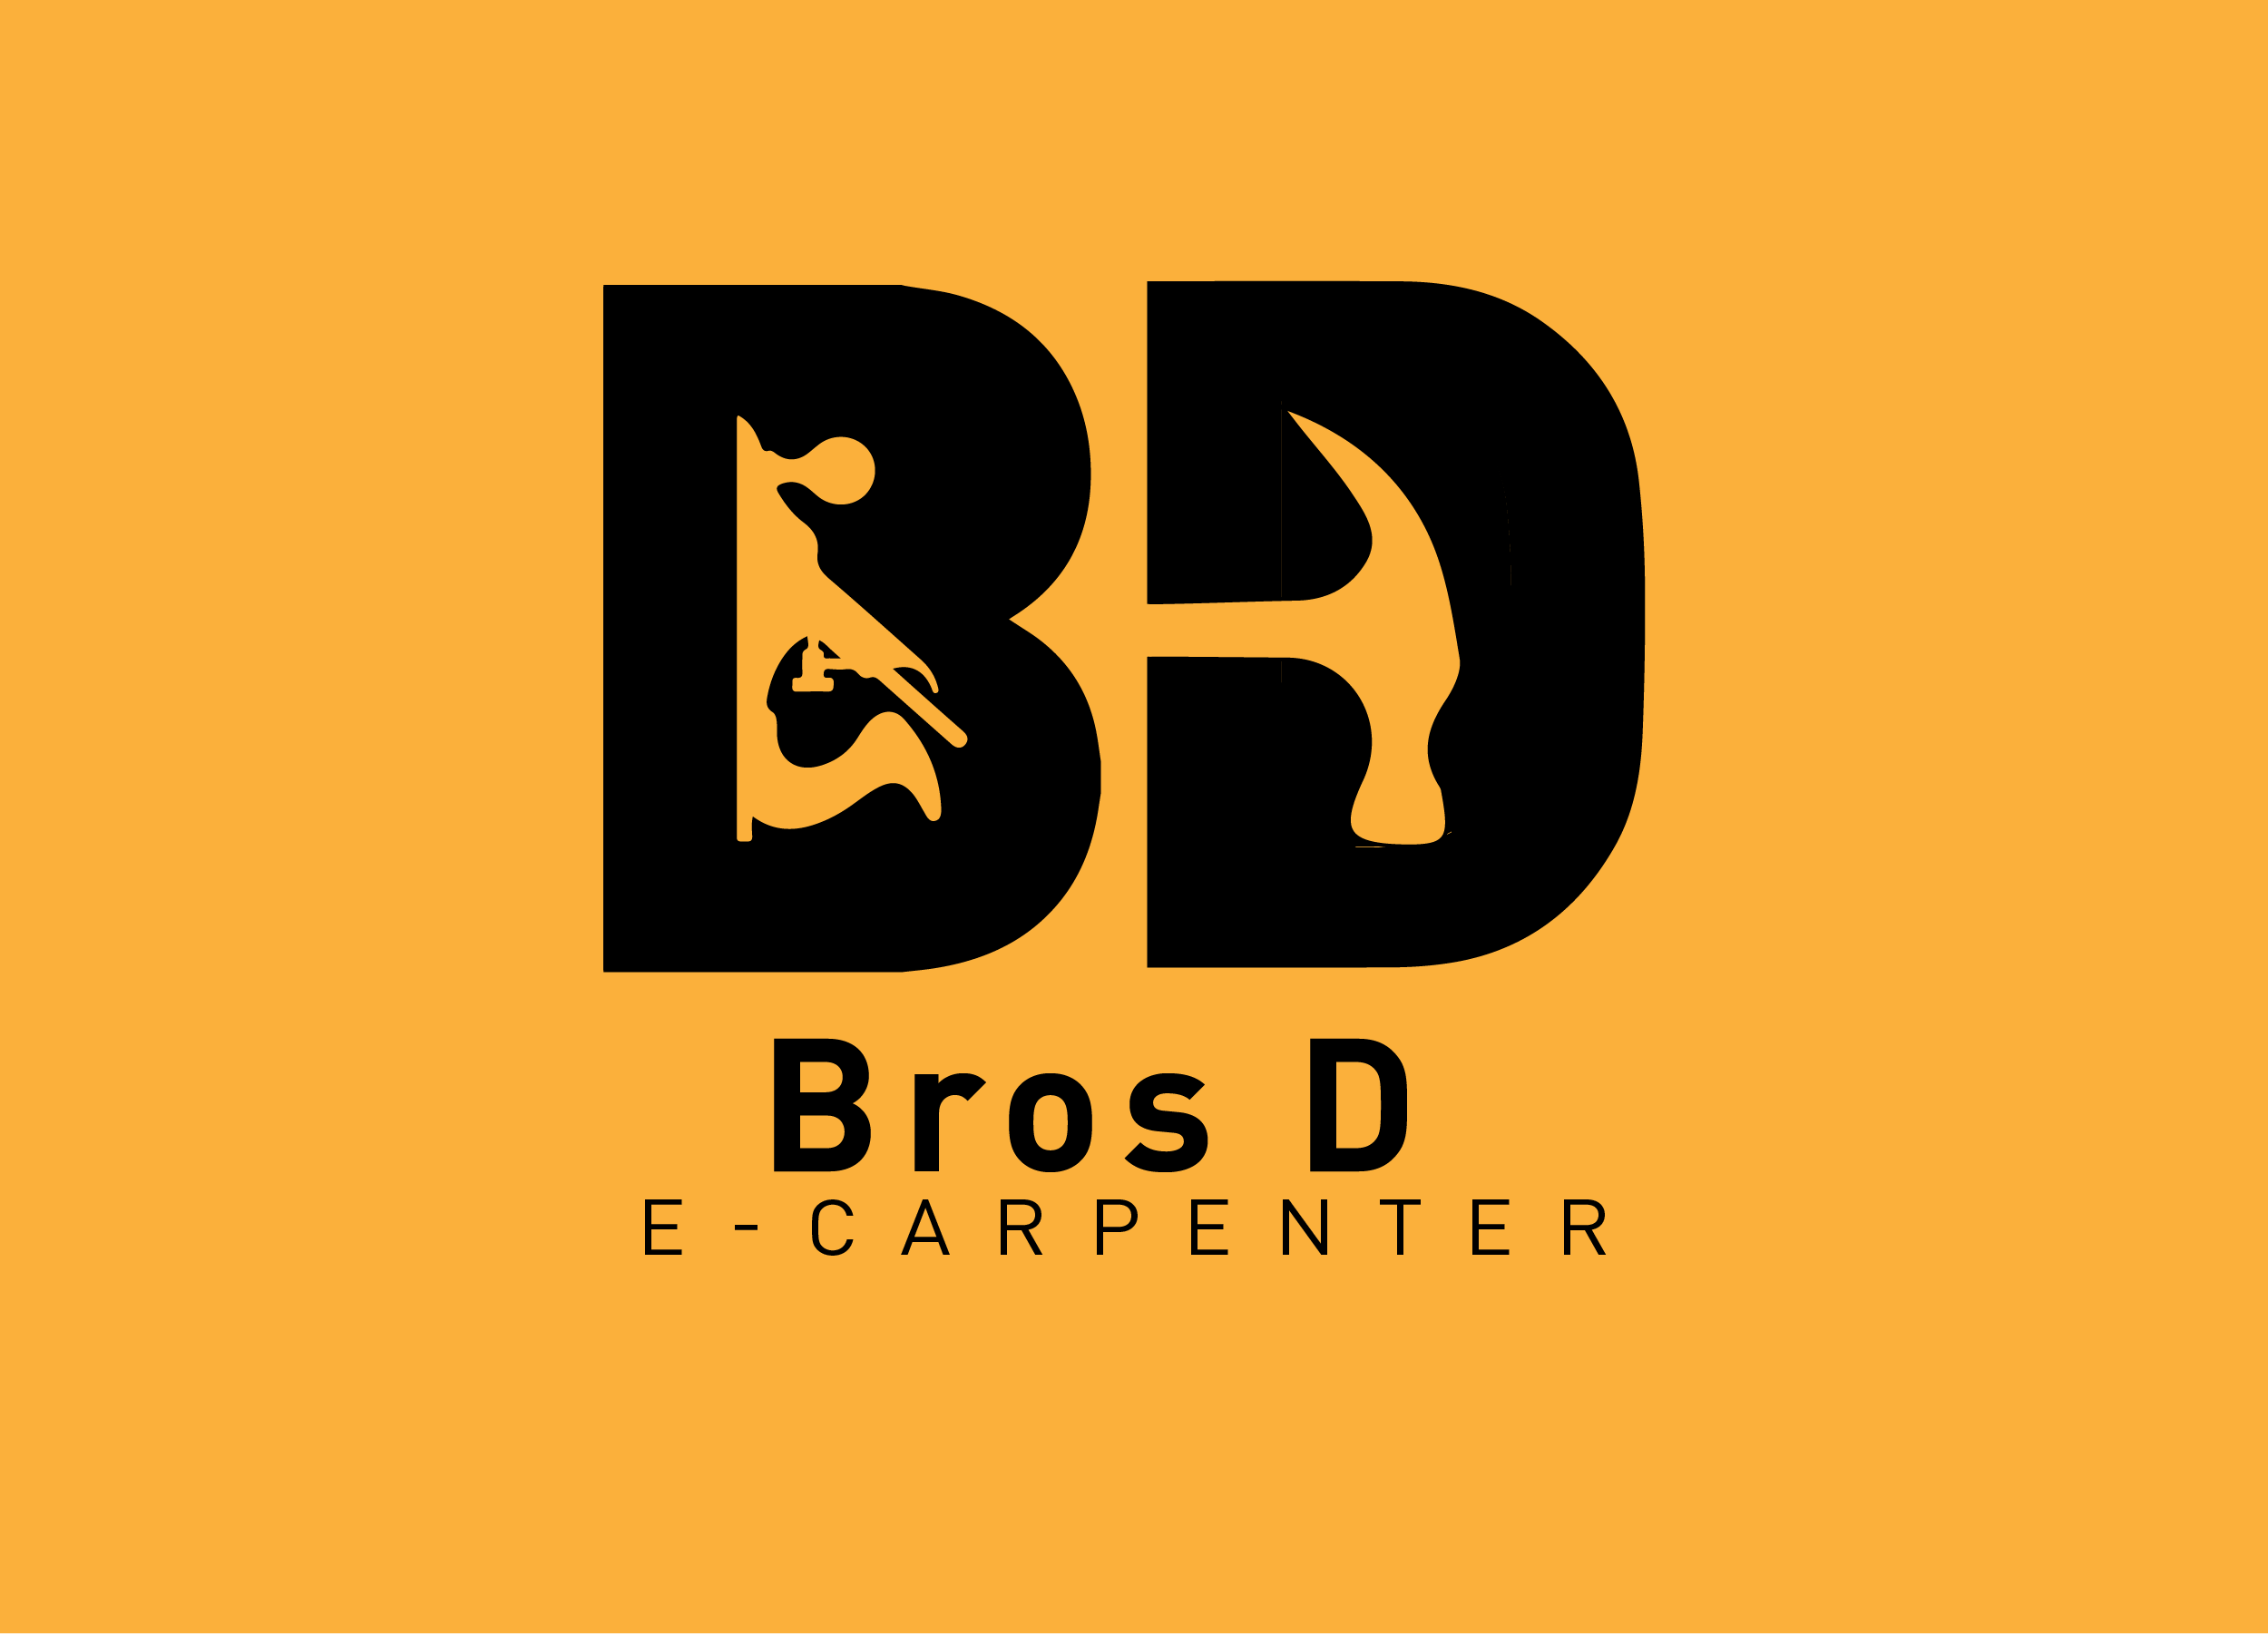 bros d carpenter leedigital